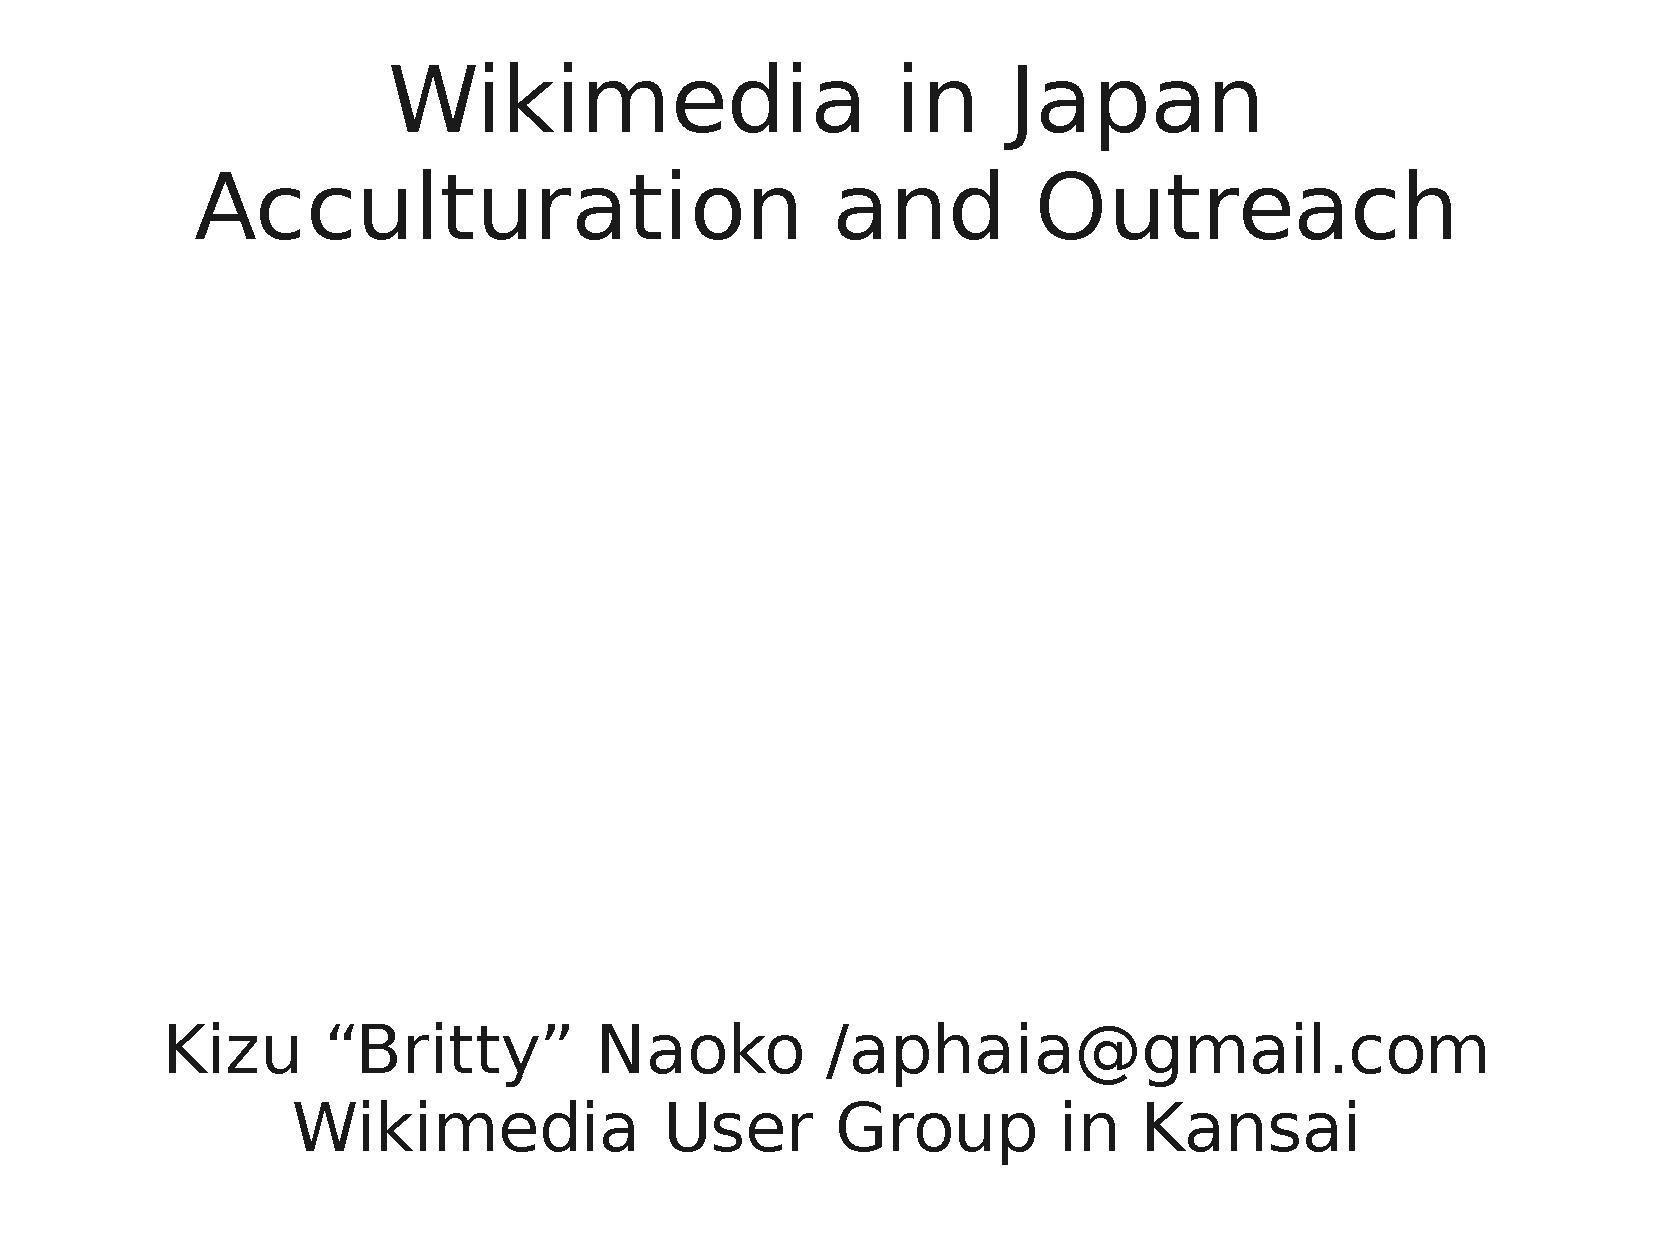 Wikimedia in Japan- Acculturation and Outreach.pdf